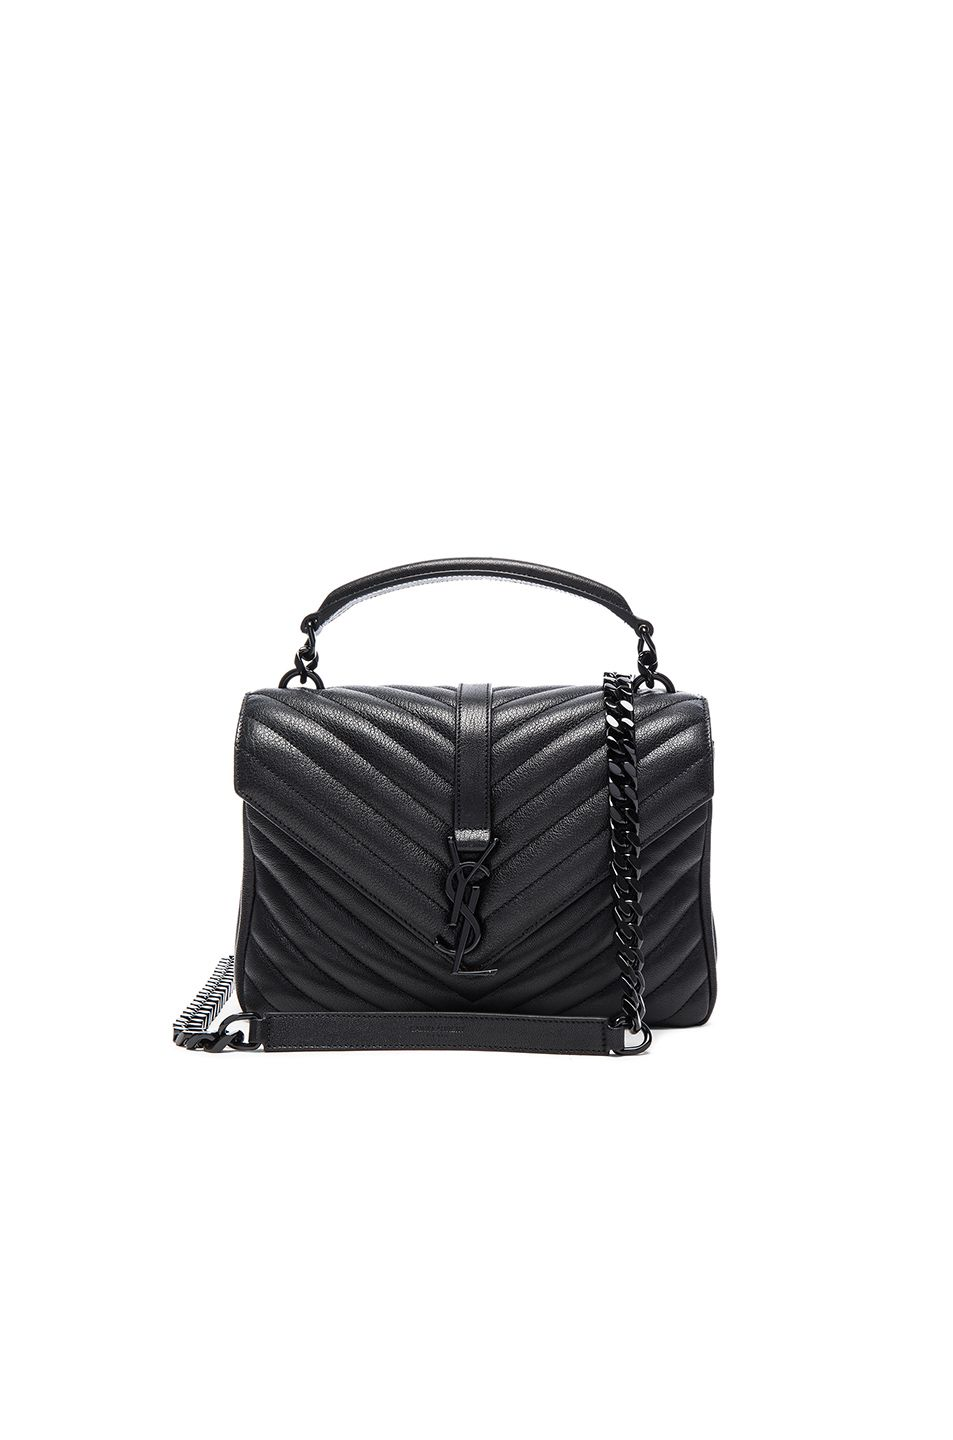 76166323ff06 SAINT LAURENT Medium Monogram College Bag.  saintlaurent  bags  shoulder  bags  leather  lining